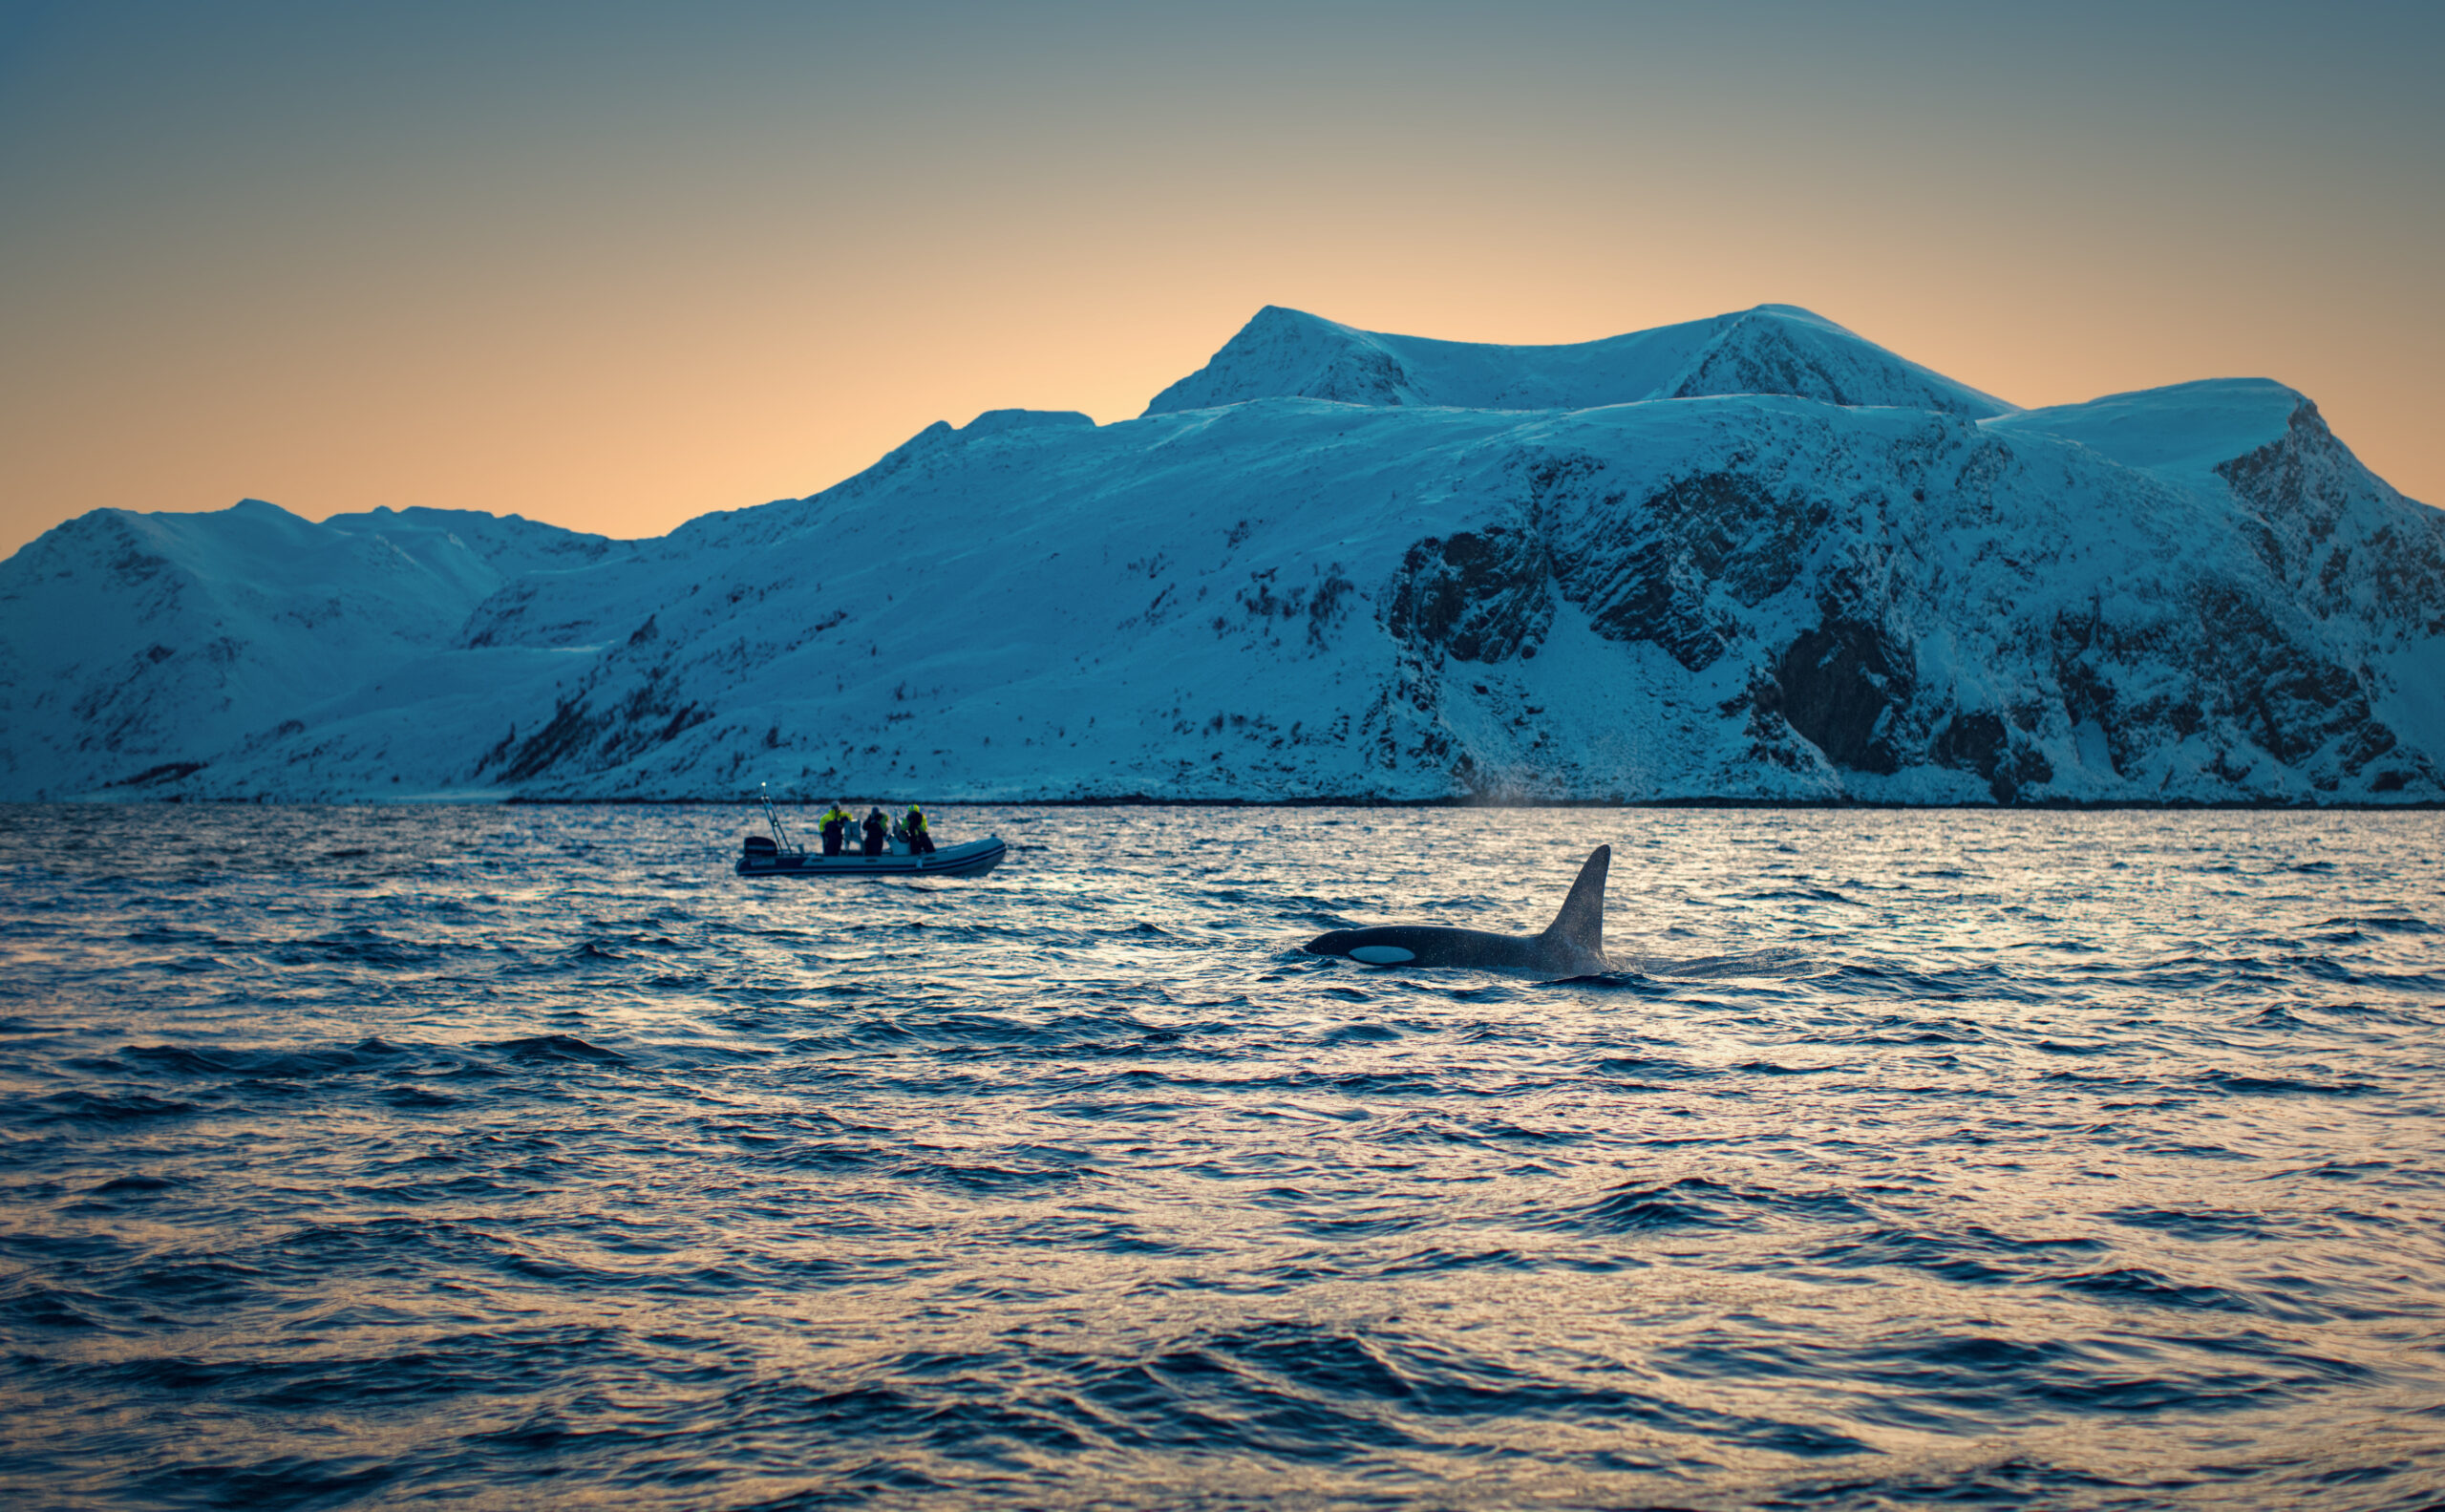 Killer whale in Norway sea